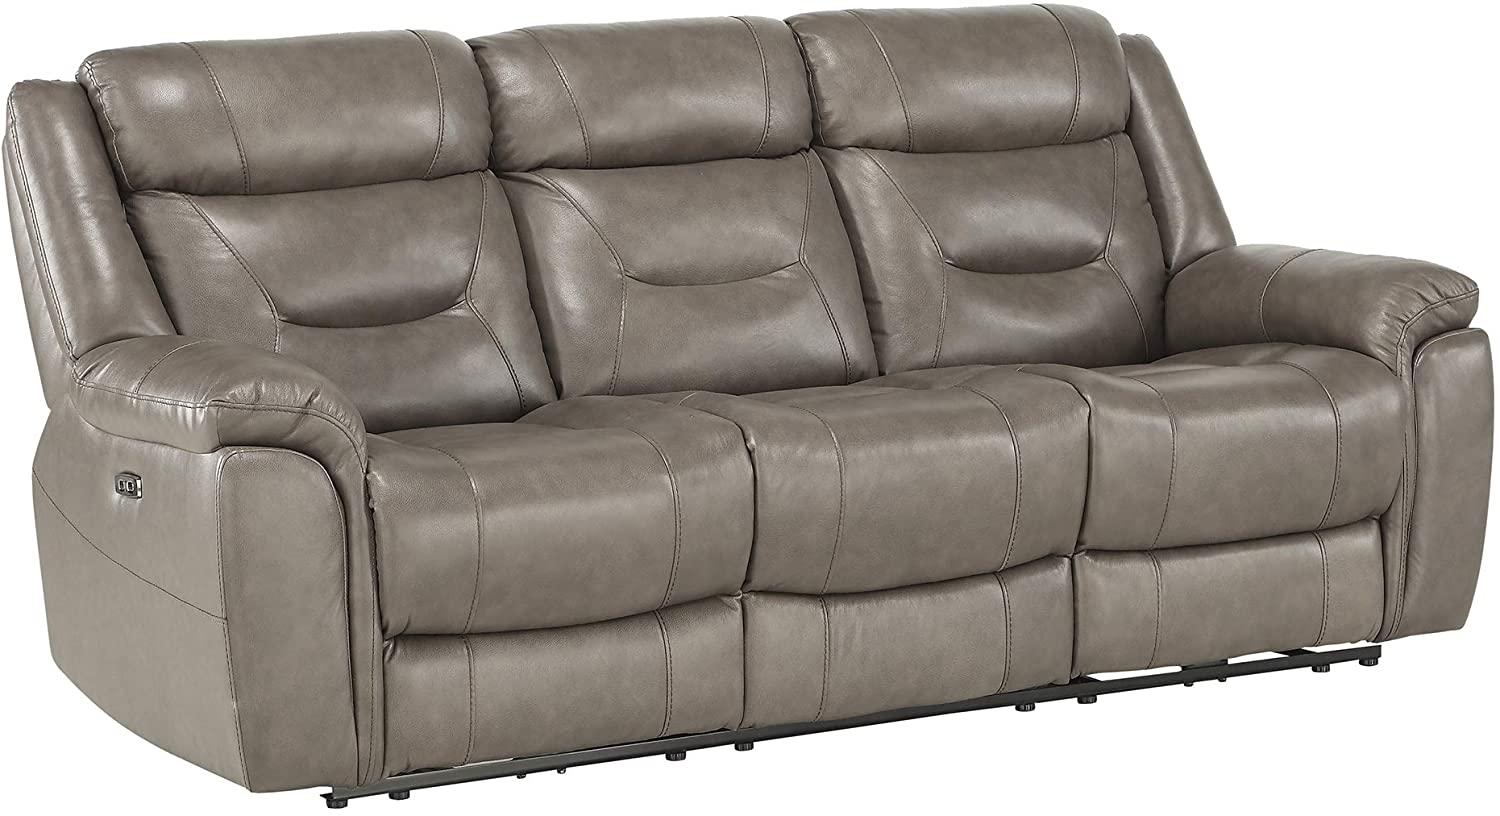 """Homelegance 87"""" Power Double Reclining Sofa - Best For Back Pain"""